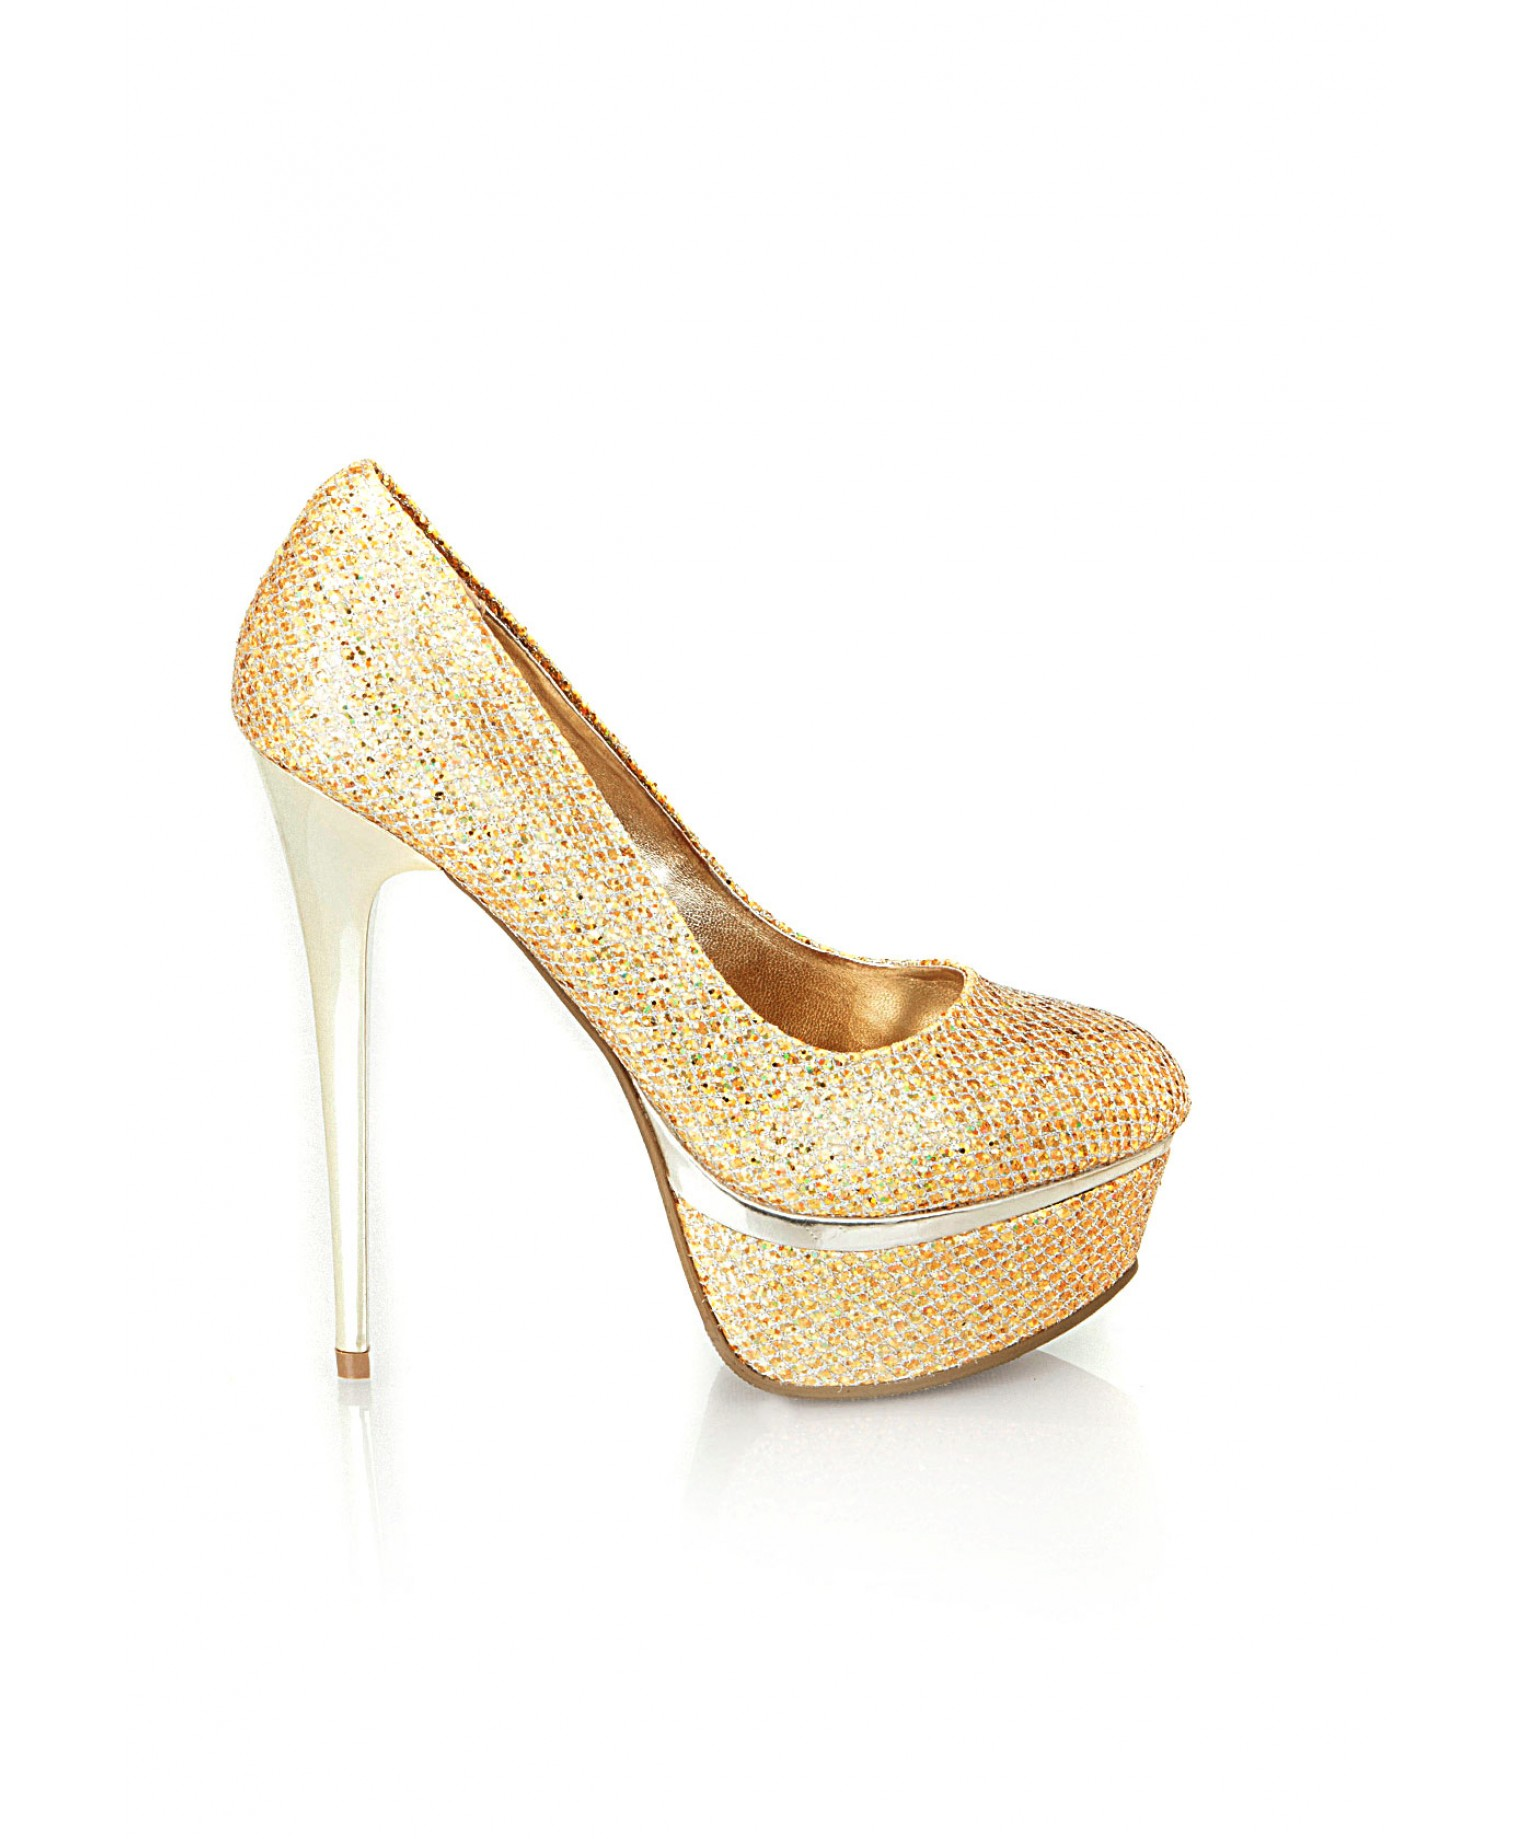 All Gold Heels 3f6zX7Go